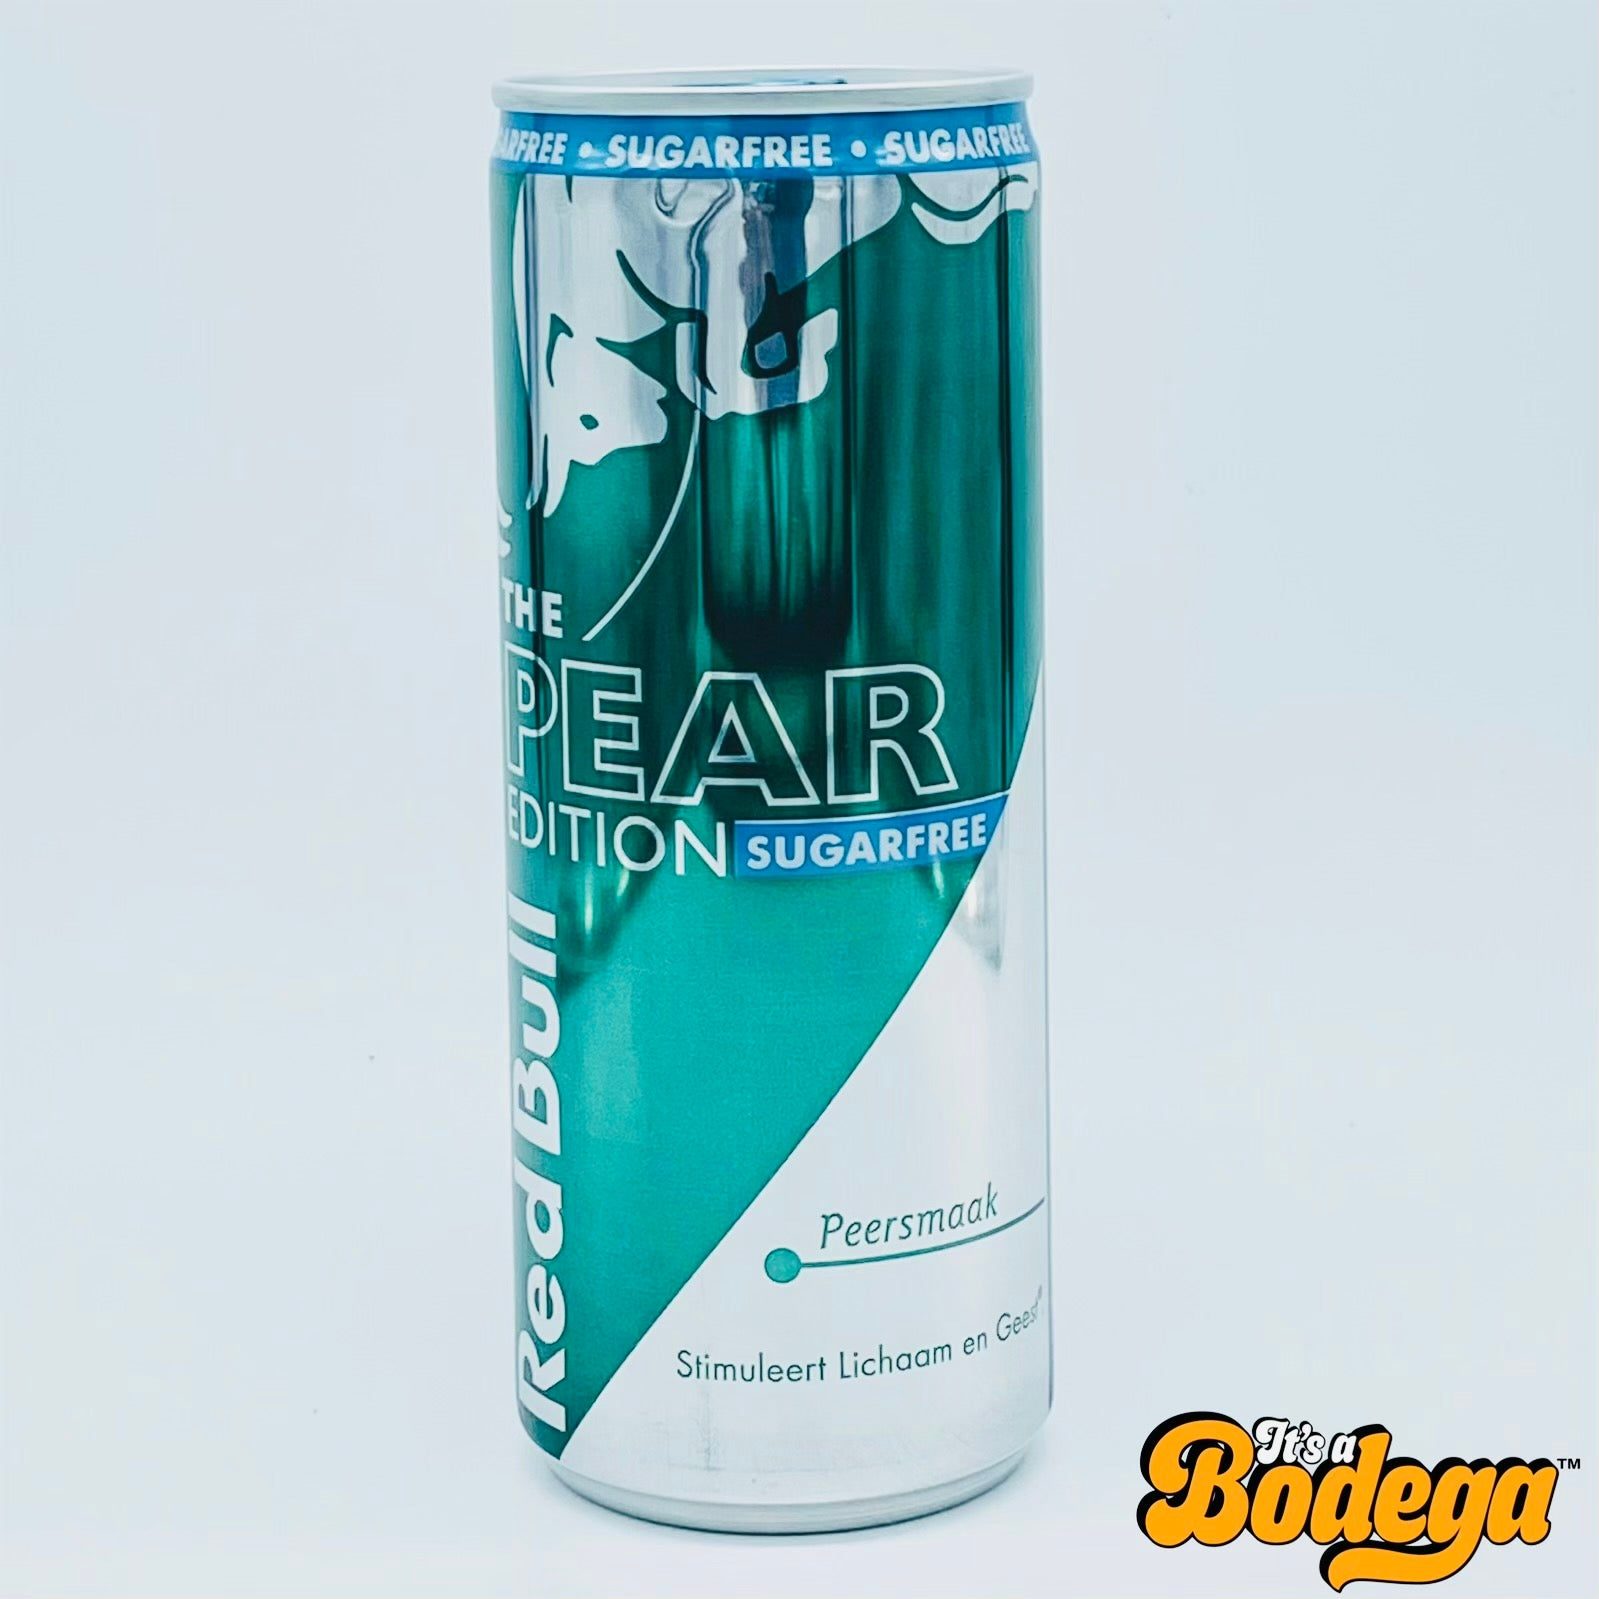 Red Bull Pear Sugarfree (Netherlands)